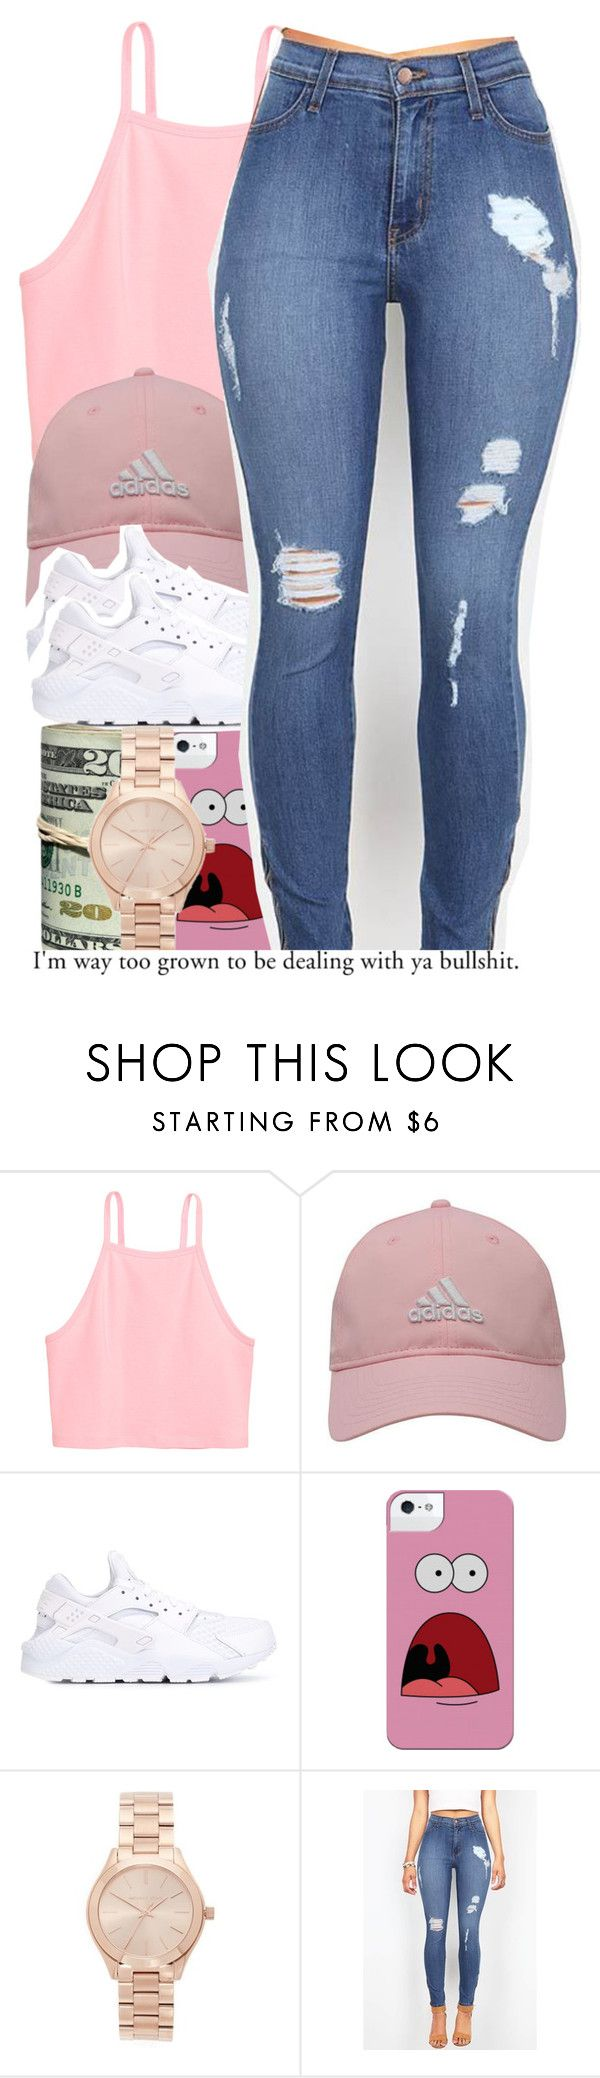 """""""For realz......"""" by alondrauribe ❤ liked on Polyvore featuring adidas Golf, NIKE and Michael Kors"""